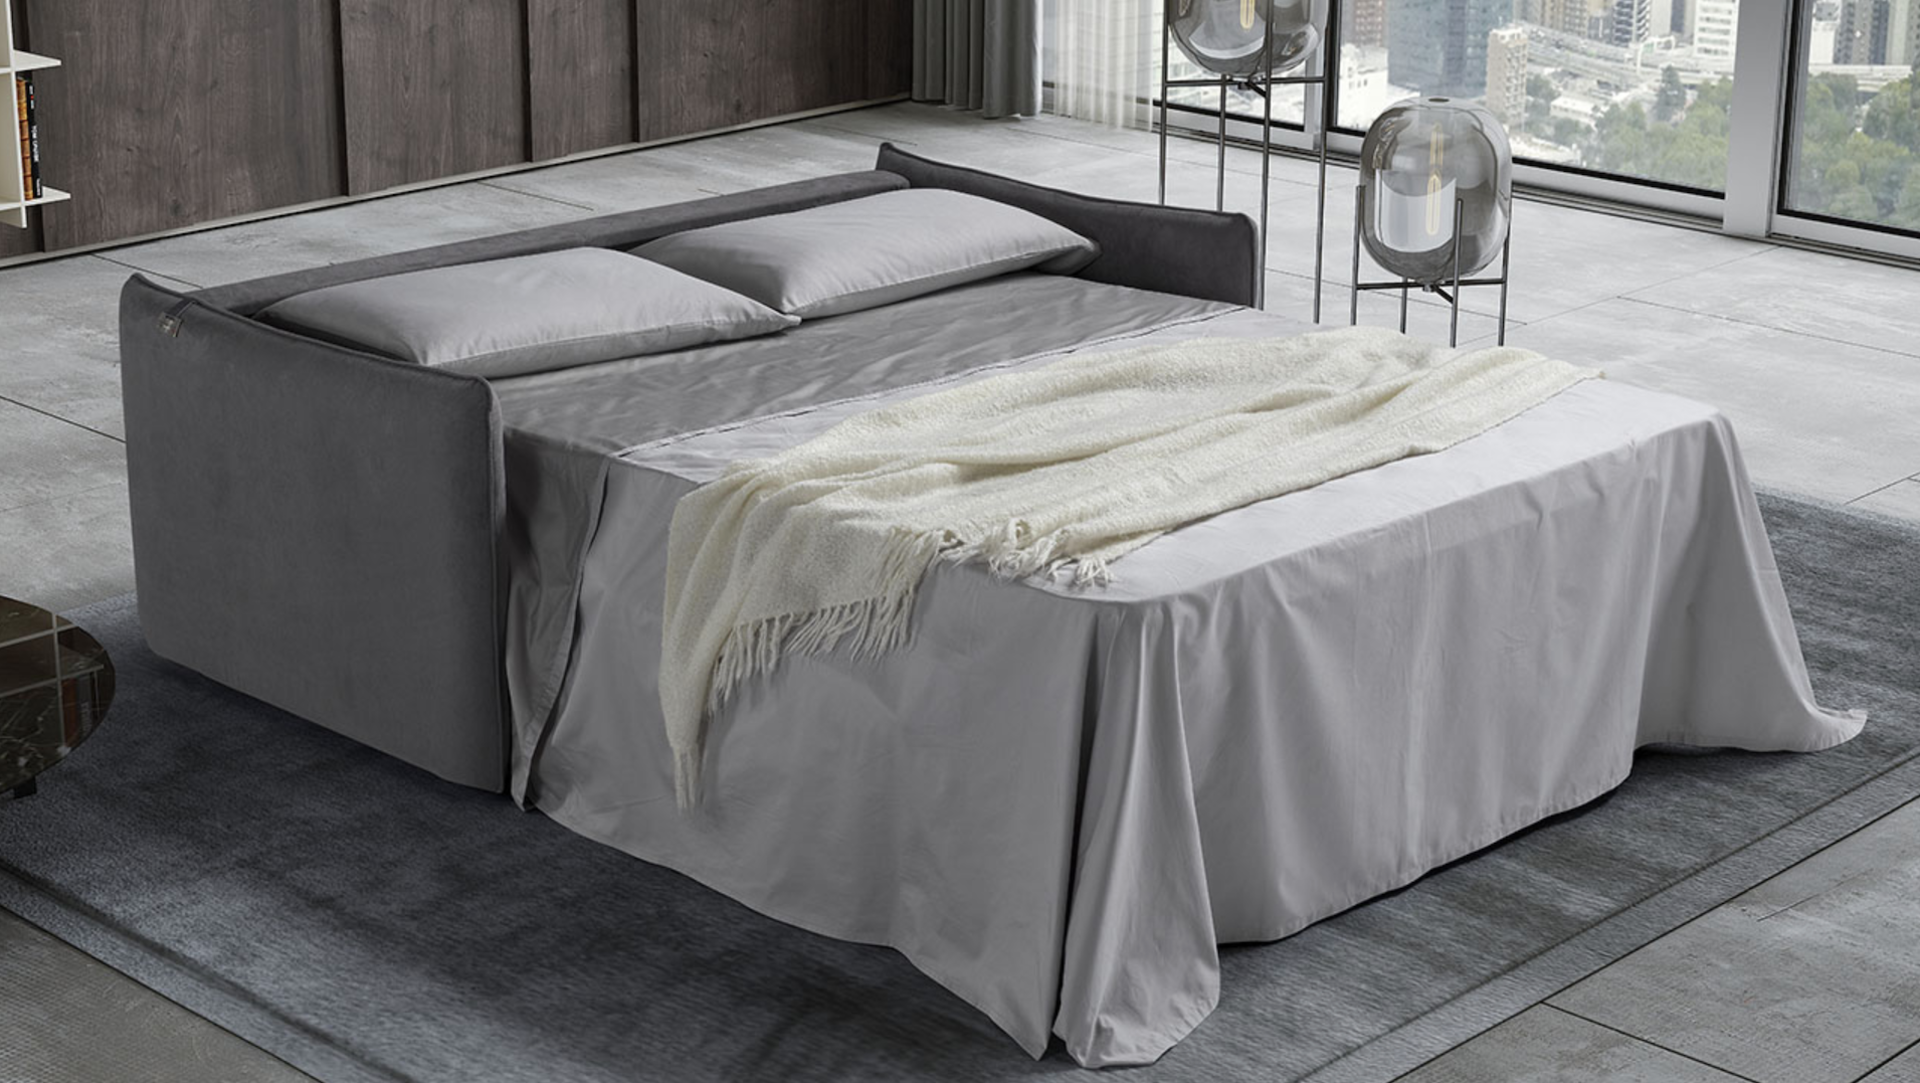 'AIMEE' Italian Crafted 3 Seat Sofa Bed in PLAZA SILVER RRP £1979 - Image 5 of 5